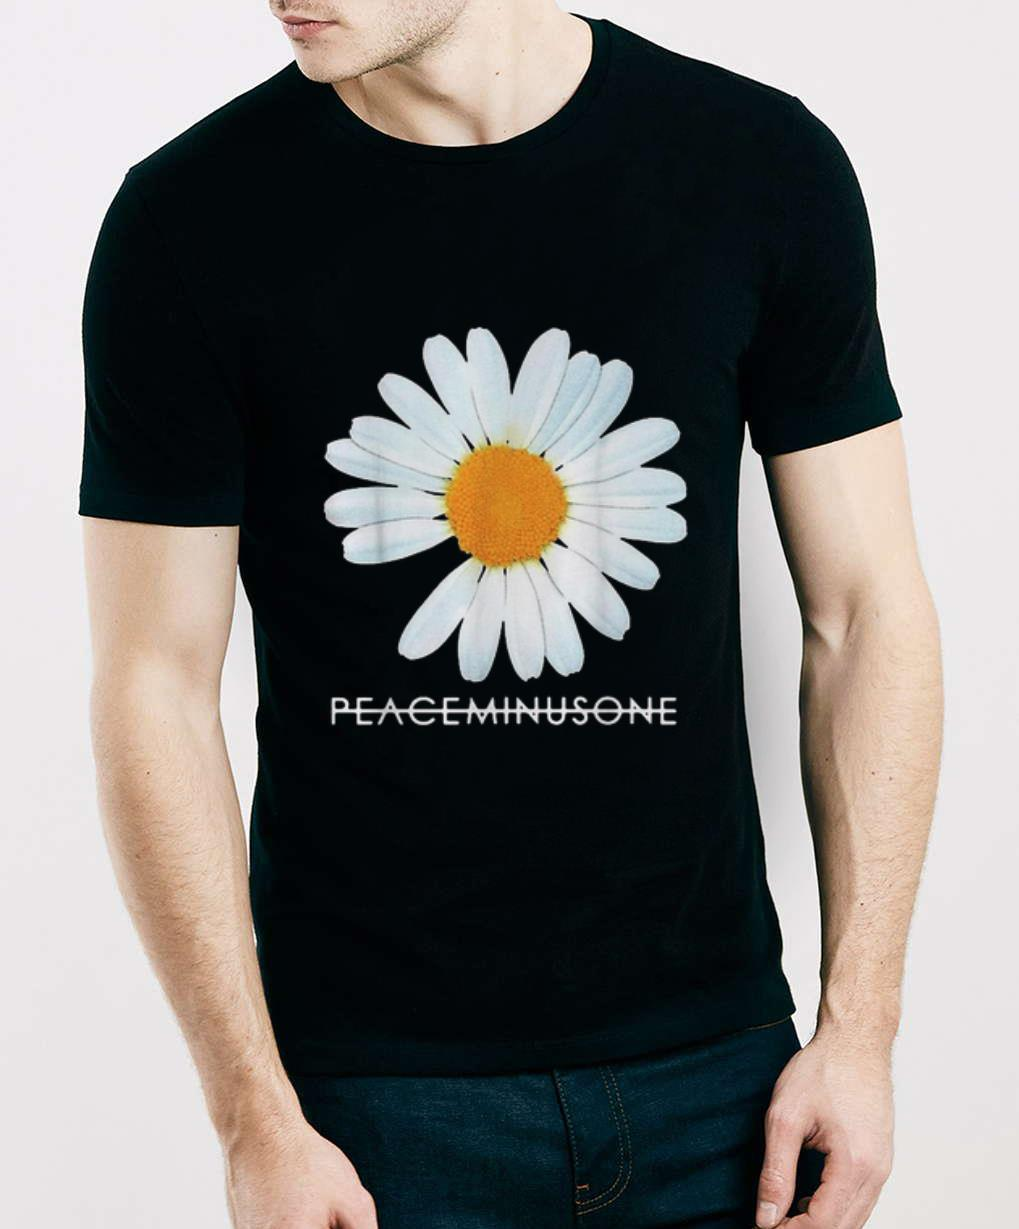 Official Peaceminusone Flower Shirt 3 1.jpg